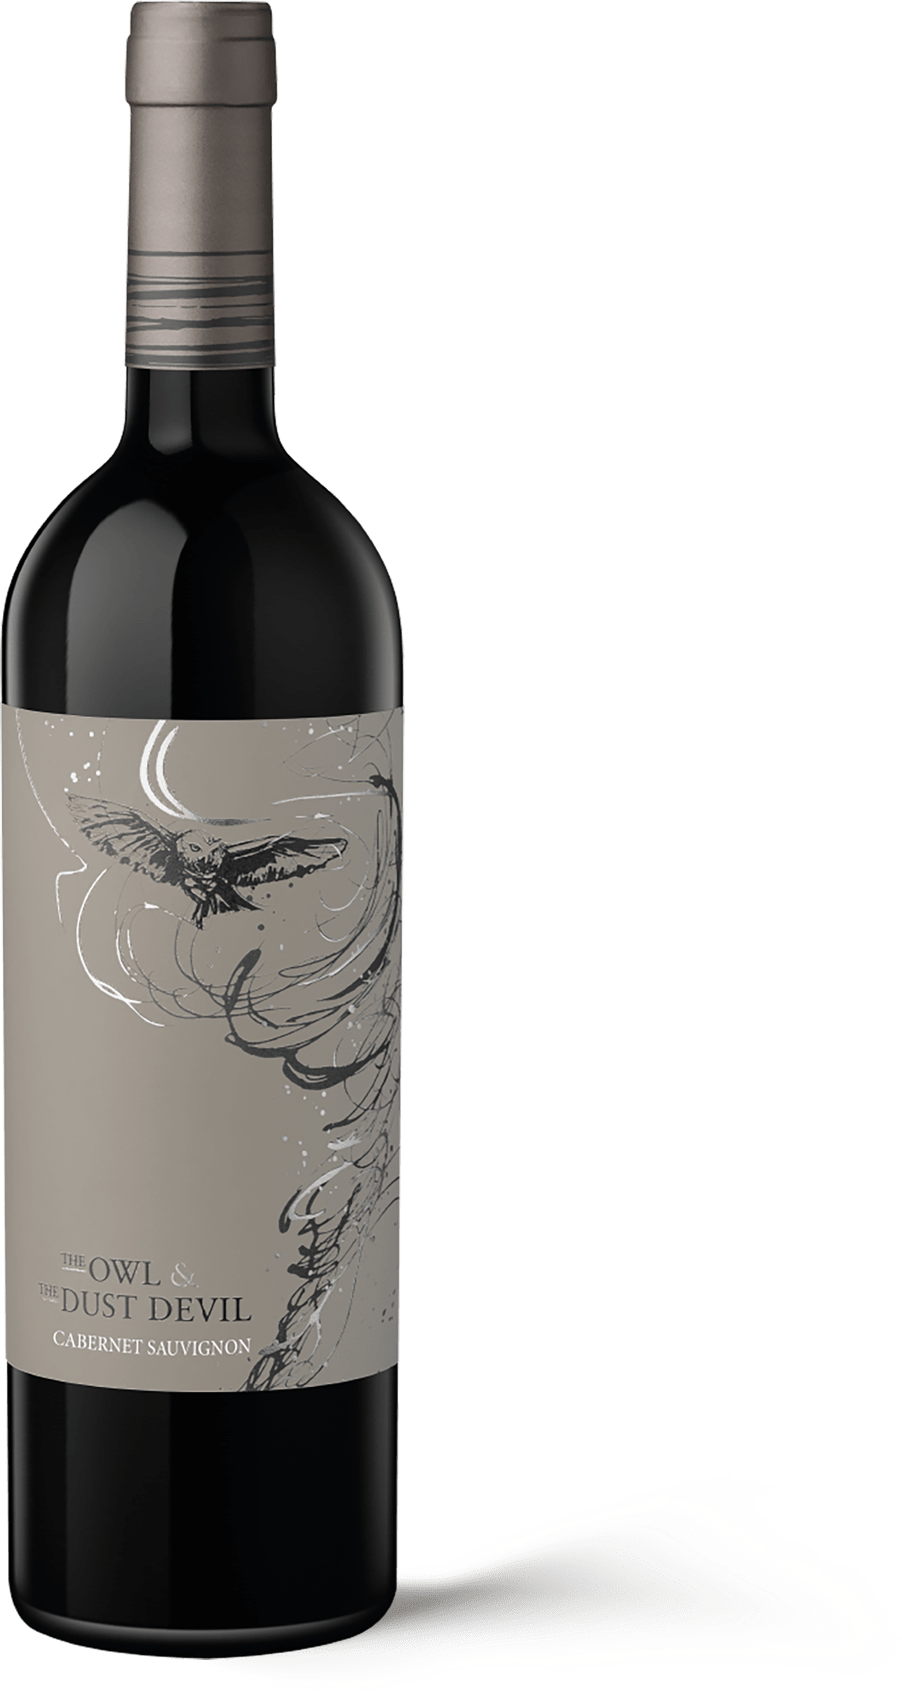 The Owl & The Dust Devil Cabernet Sauvignon